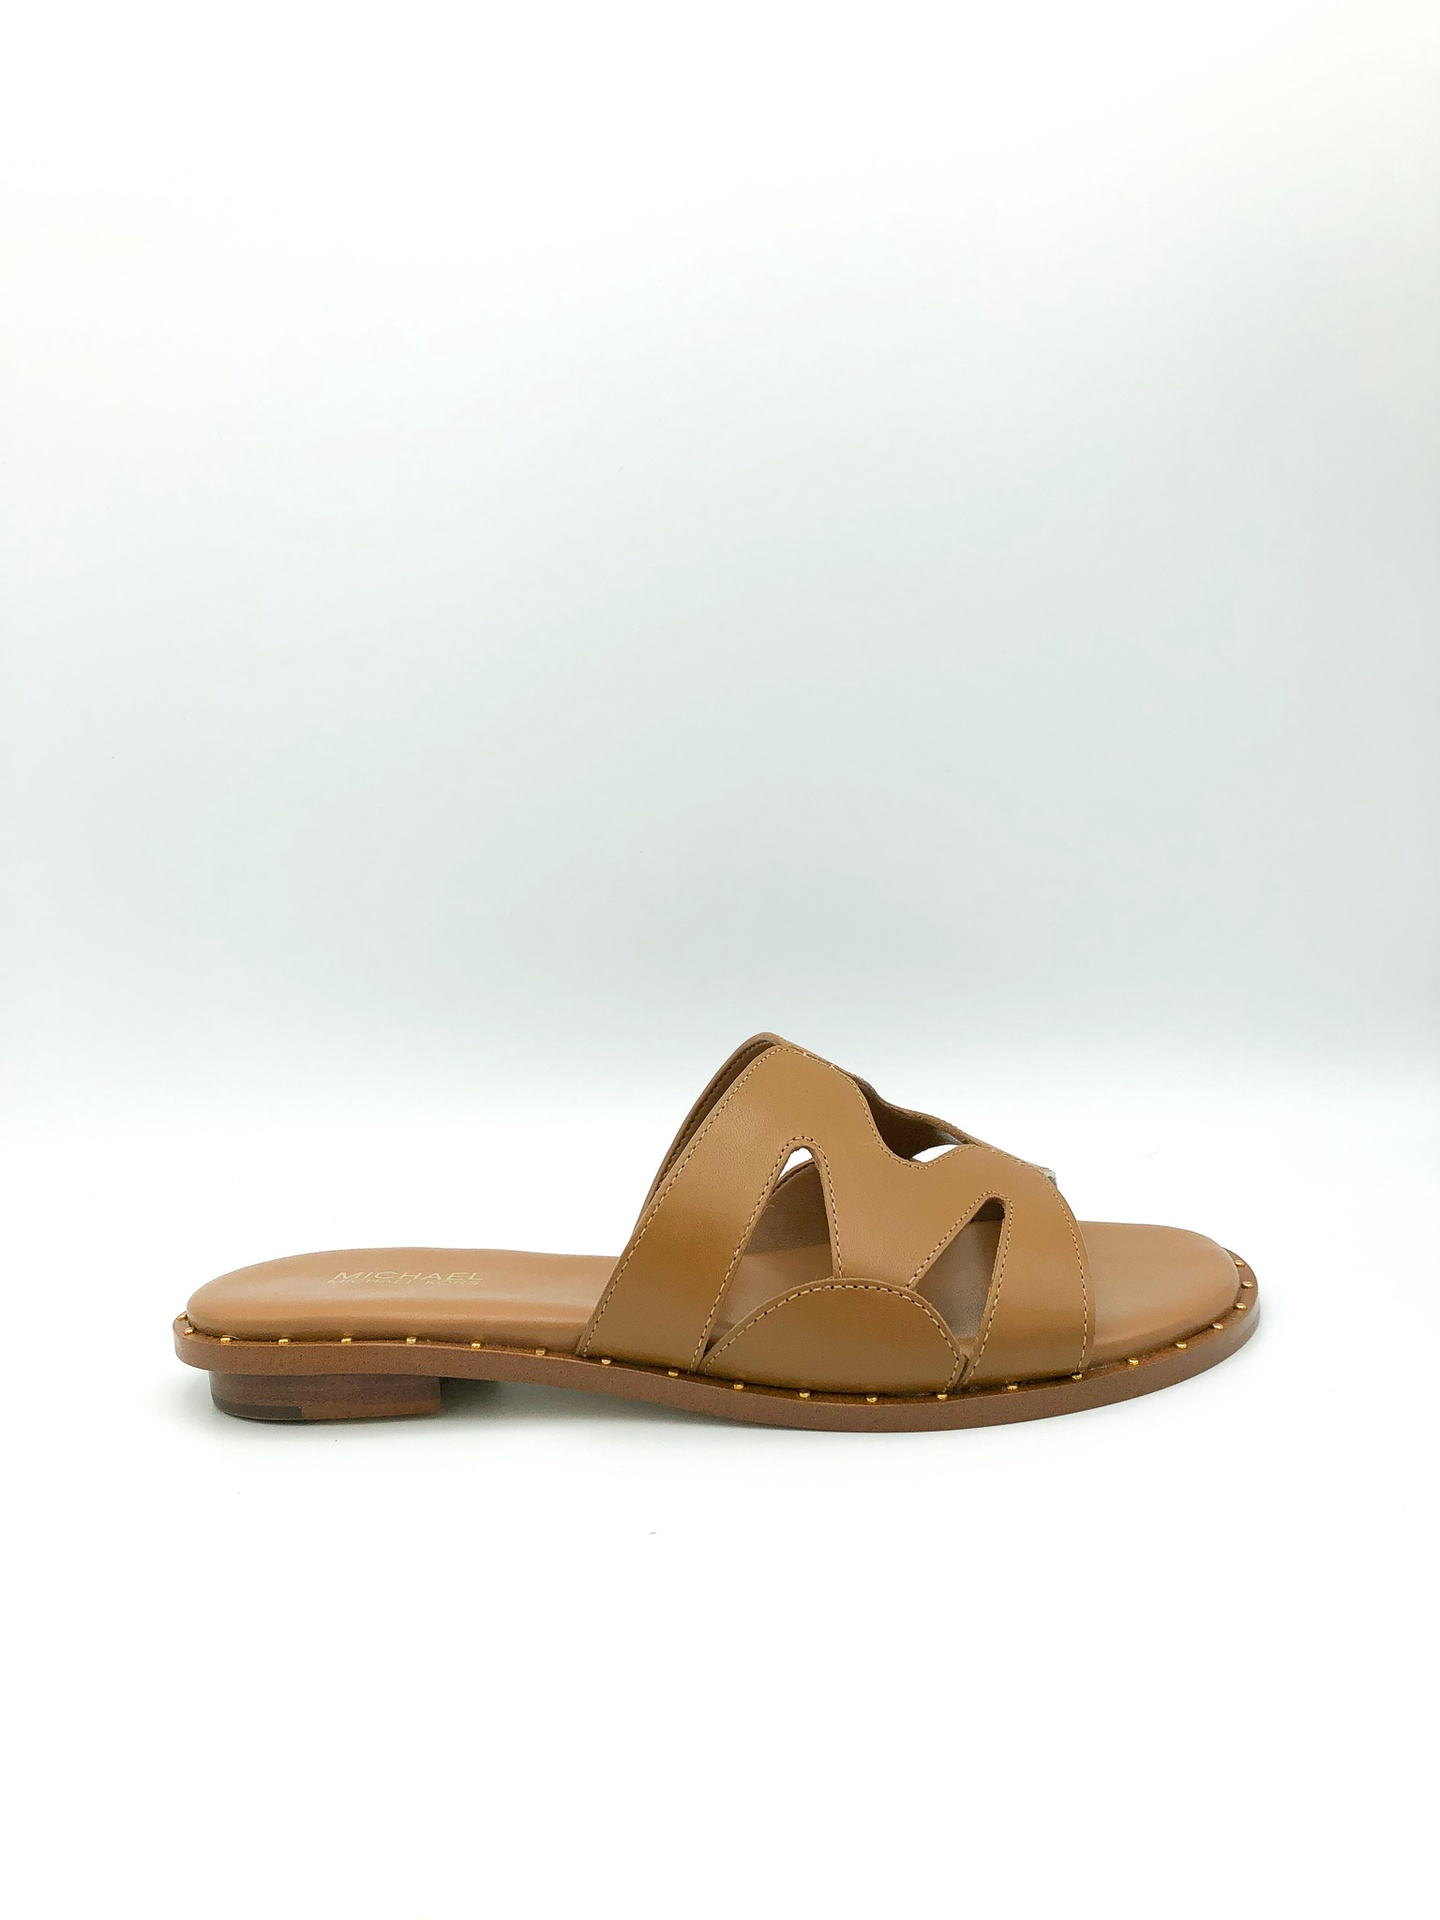 MICHAEL KORS - ANNALEE LEATHER SLIDE IN ACORN